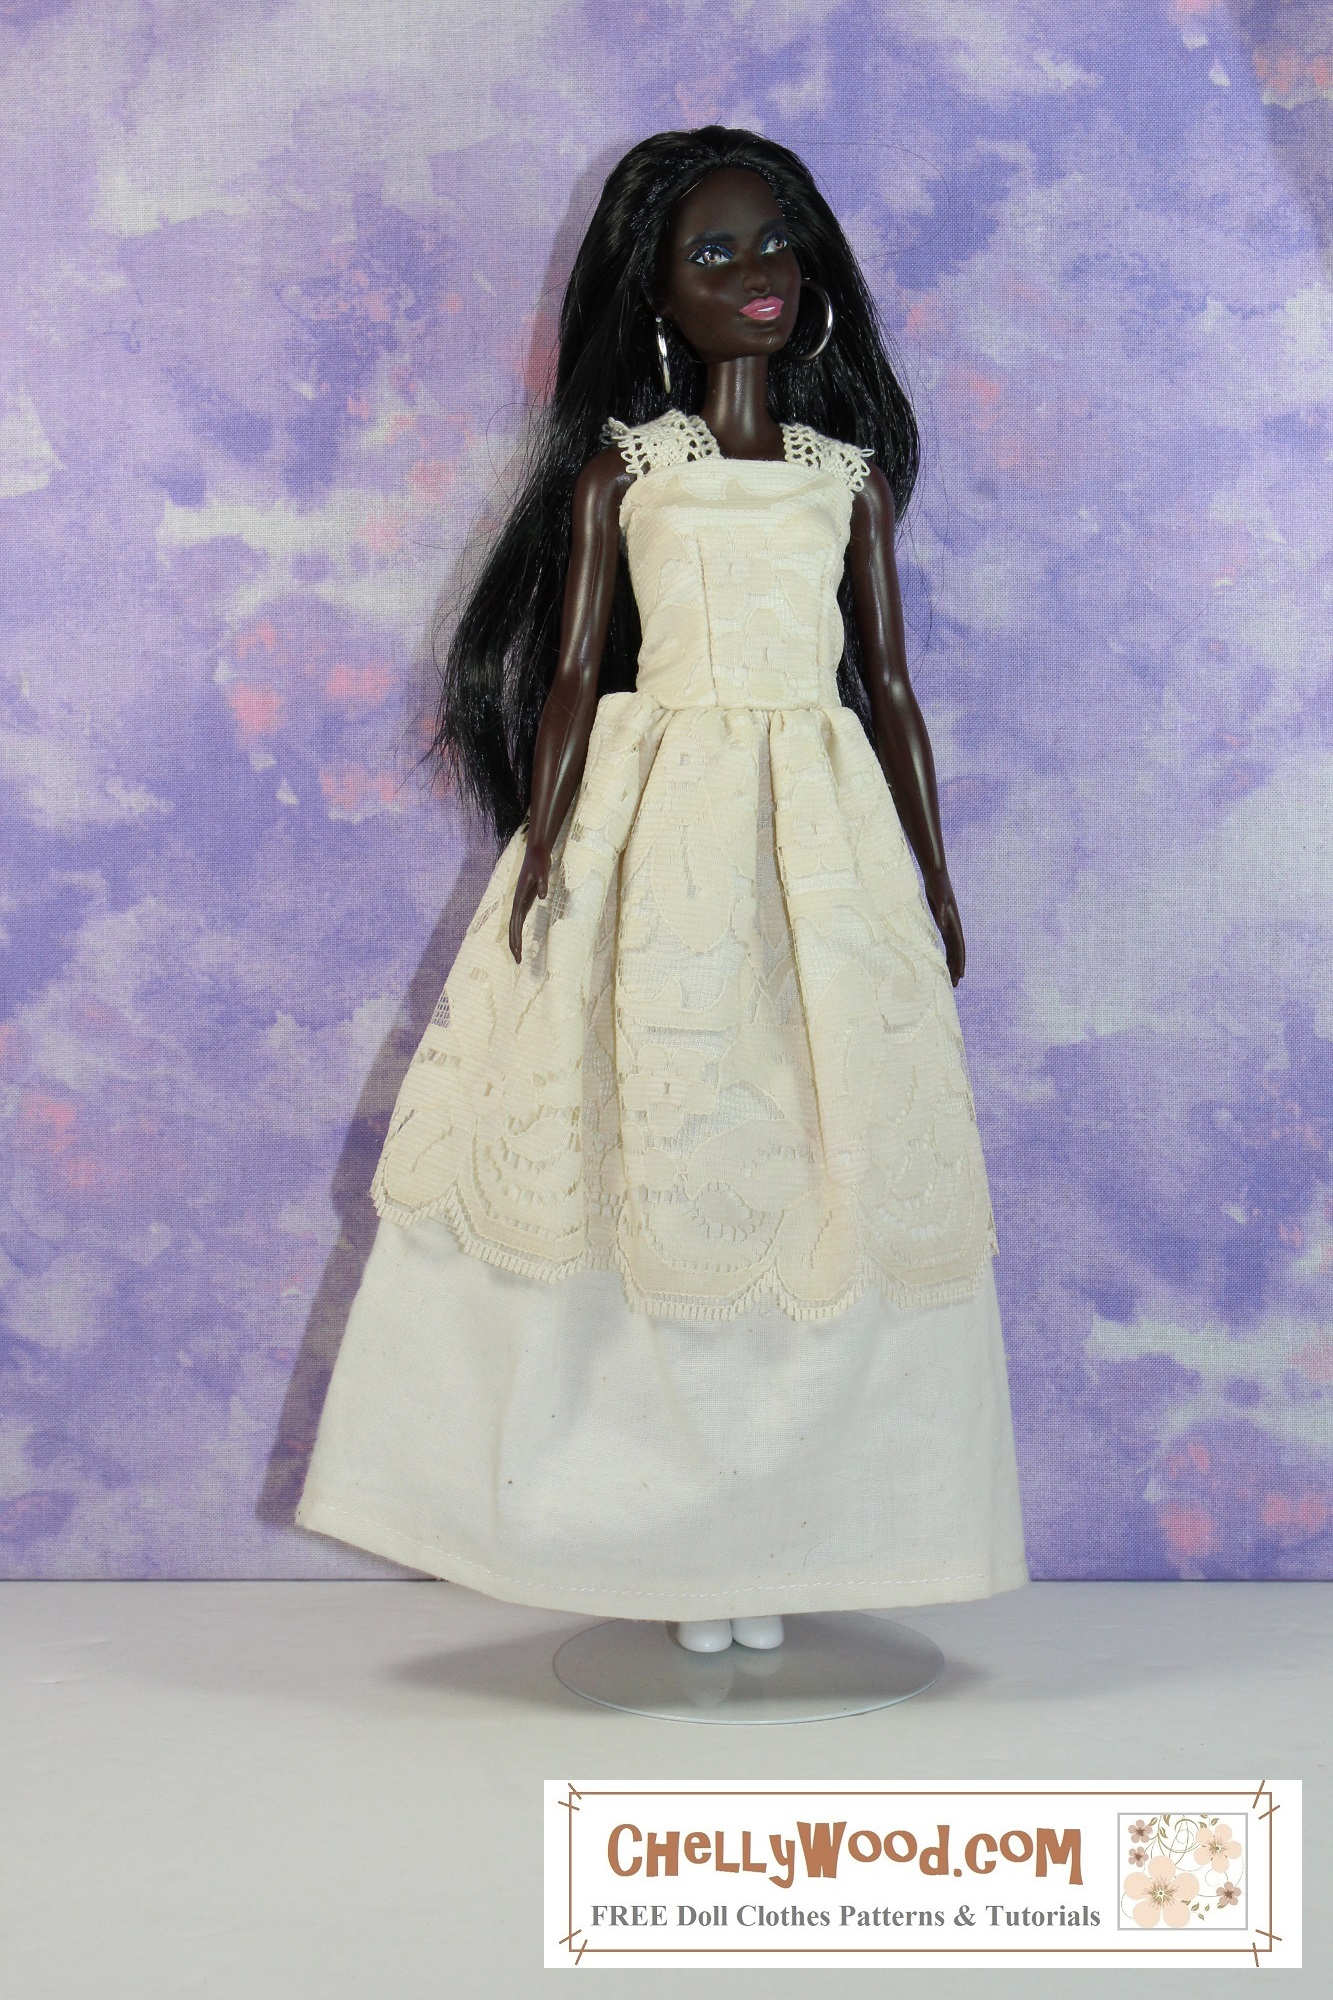 The image shows a modern Mattel Barbie doll wearing a handmade wedding gown. the bodice of the dress is overlaid with lace, and there's a layer of lace over the top of the cotton skirting. The straps of the dress are also made of lacy ribbon. The African-look Barbie has a lovely dark chocolate complexion and pink lipstick lips. Her long straight hair is worn down her back. She also wears a pair of white flats to match the cotton skirting, while the lace has more of an ivory color to it. The doll has wide hoop earrings that frame her pretty face. The doll stands on a white platform with a splotchy purple background behind her. If you'd like to download the free printable PDF sewing patterns for making this lovely wedding dress (or a less formal strappy sun dress that could also be made using this pattern) please click on the link in the caption. It will take you to the page where you can find the free printable PDF sewing patterns and the tutorial videos for making this dress.